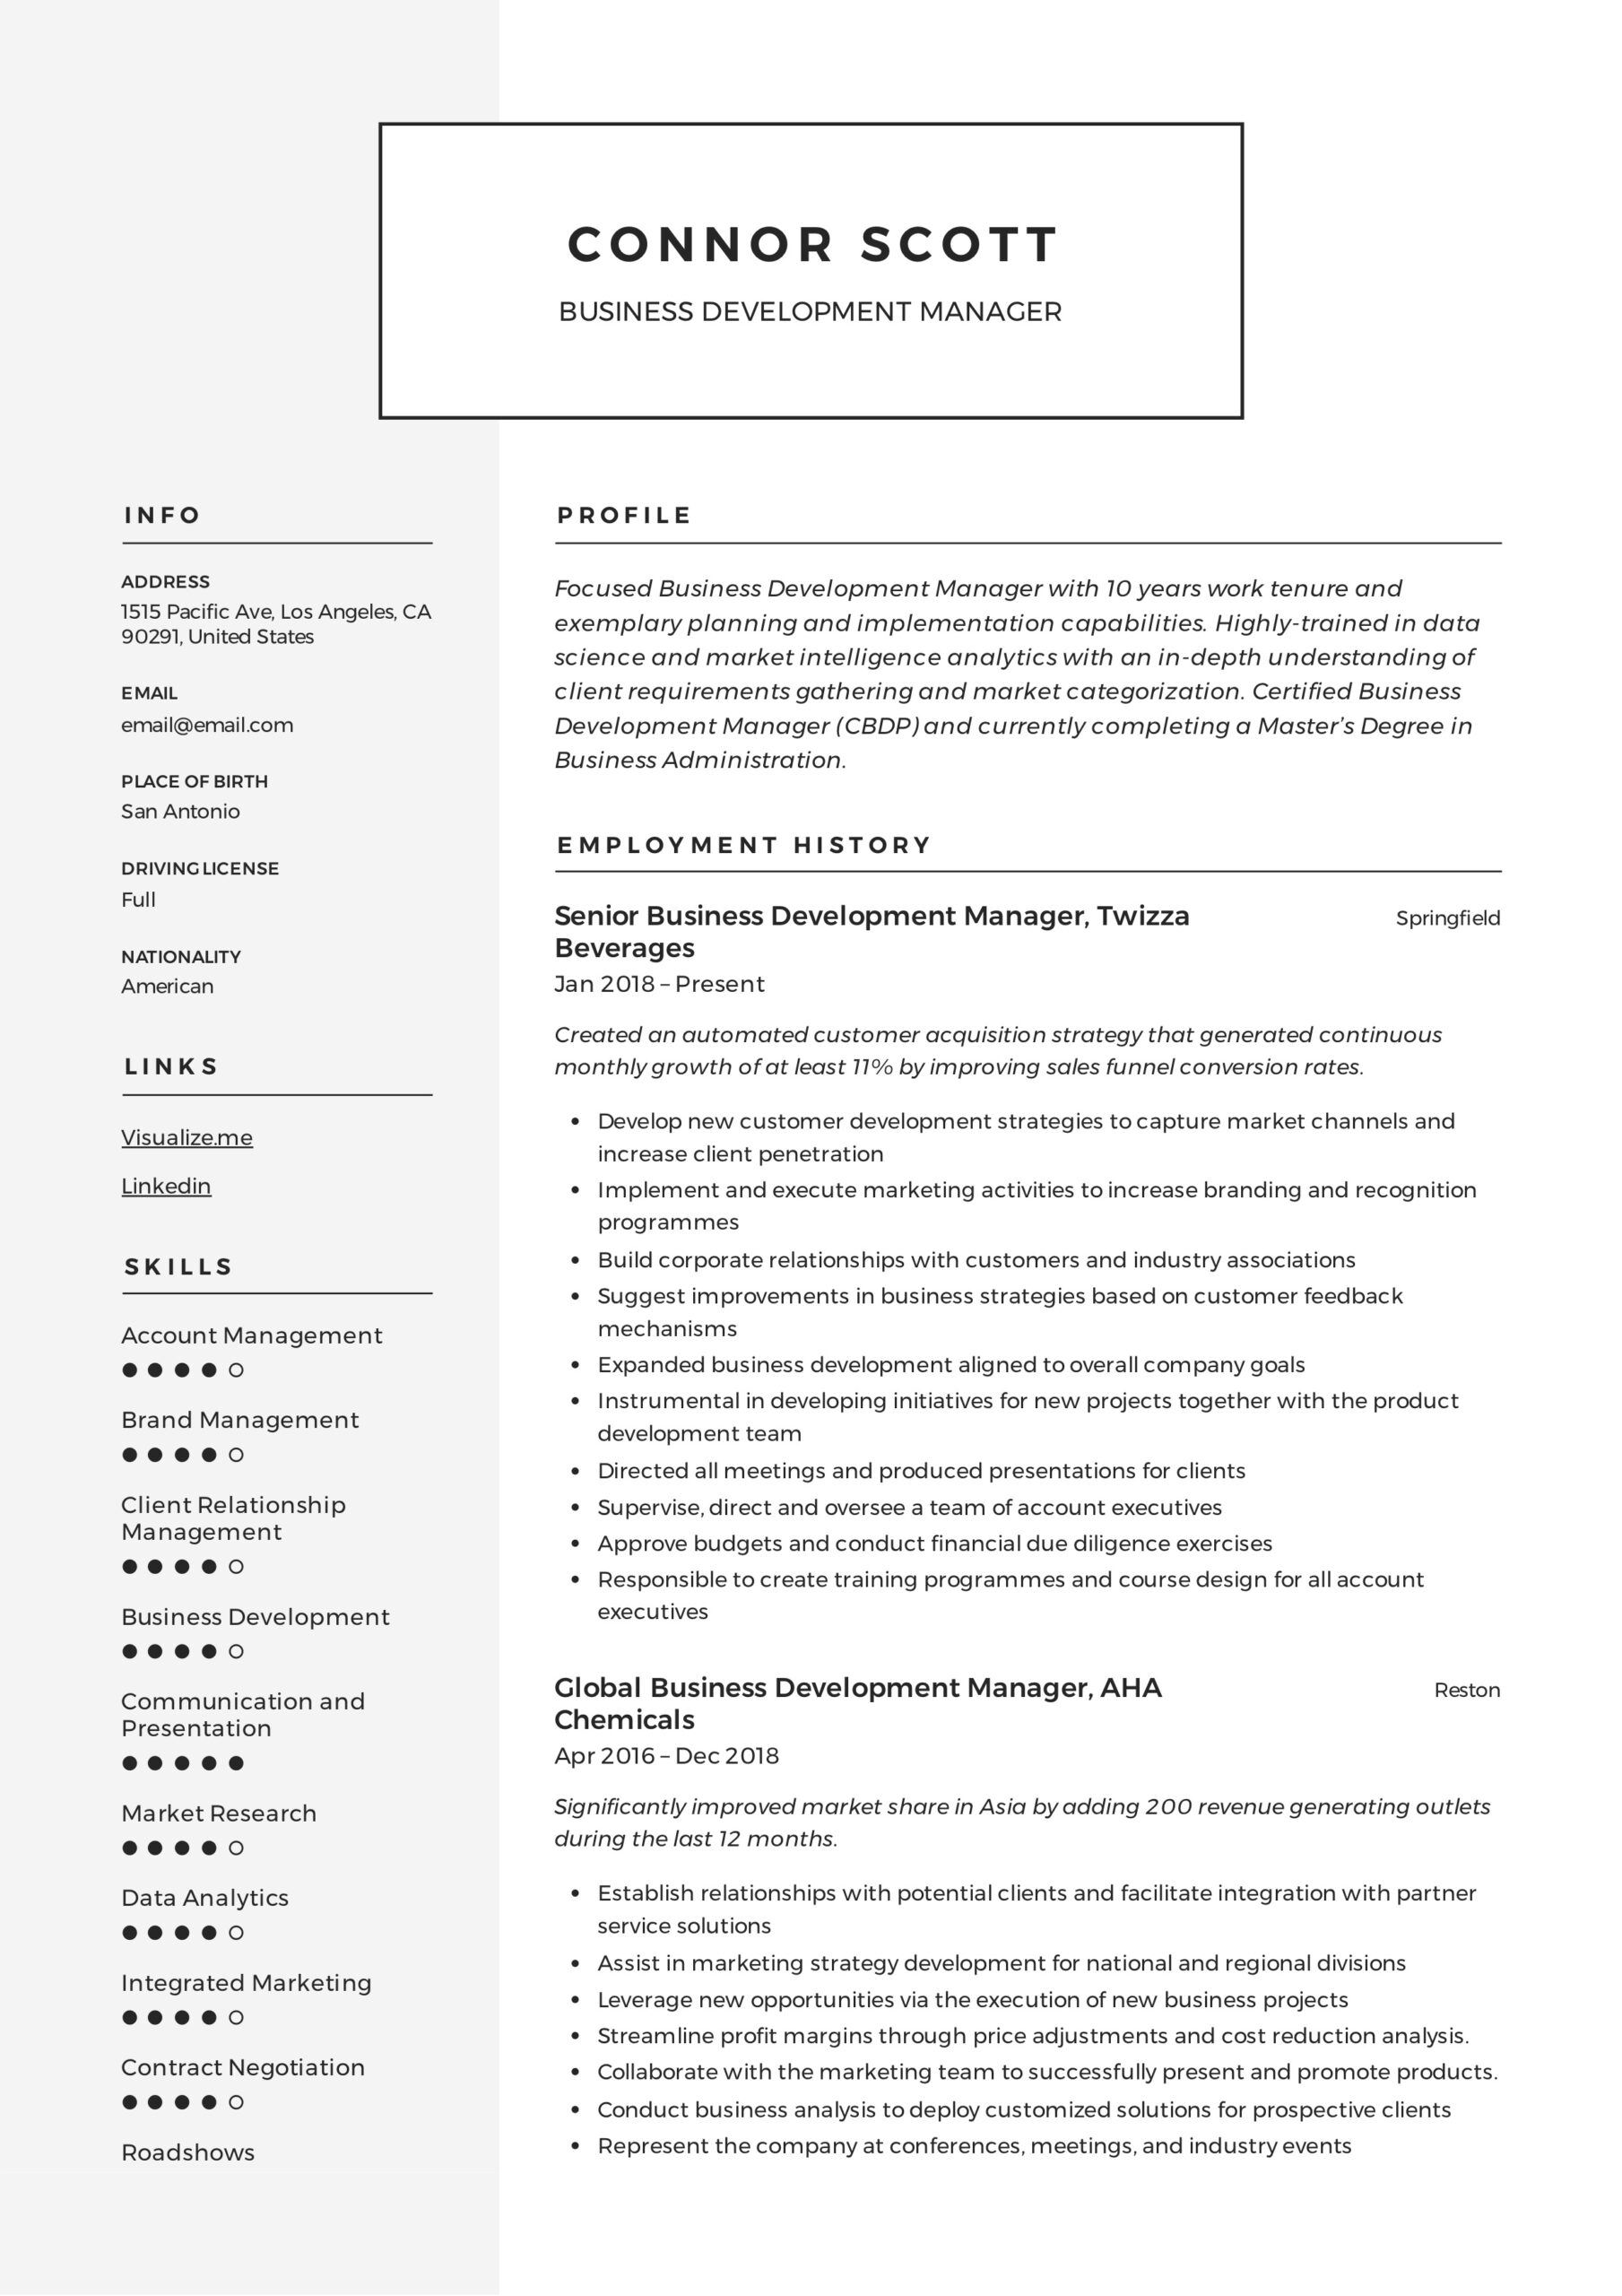 business development manager resume guide templates pdf executive skills latex template Resume Business Development Executive Skills Resume